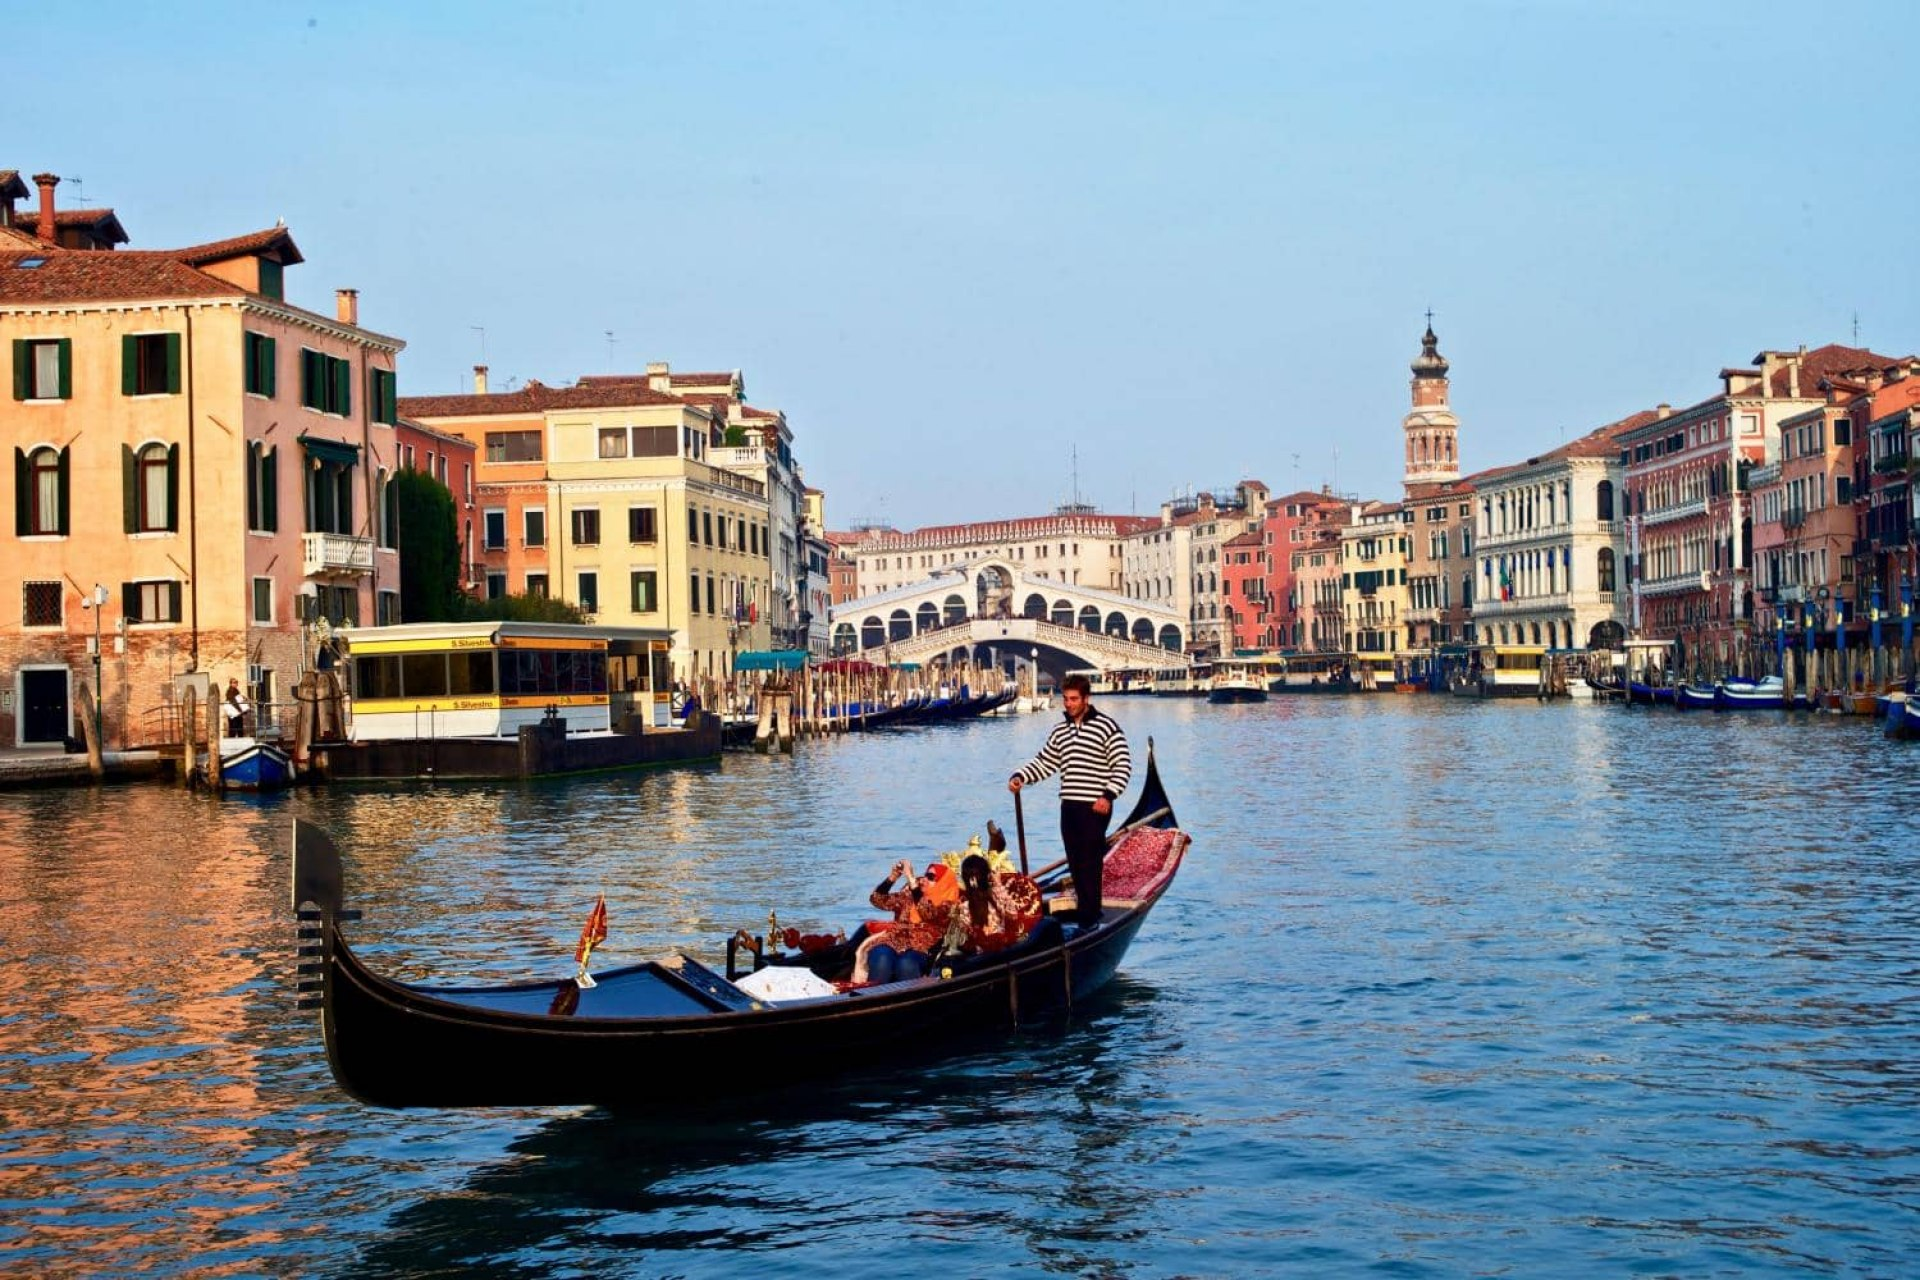 Vip tour: All The Best of Venice